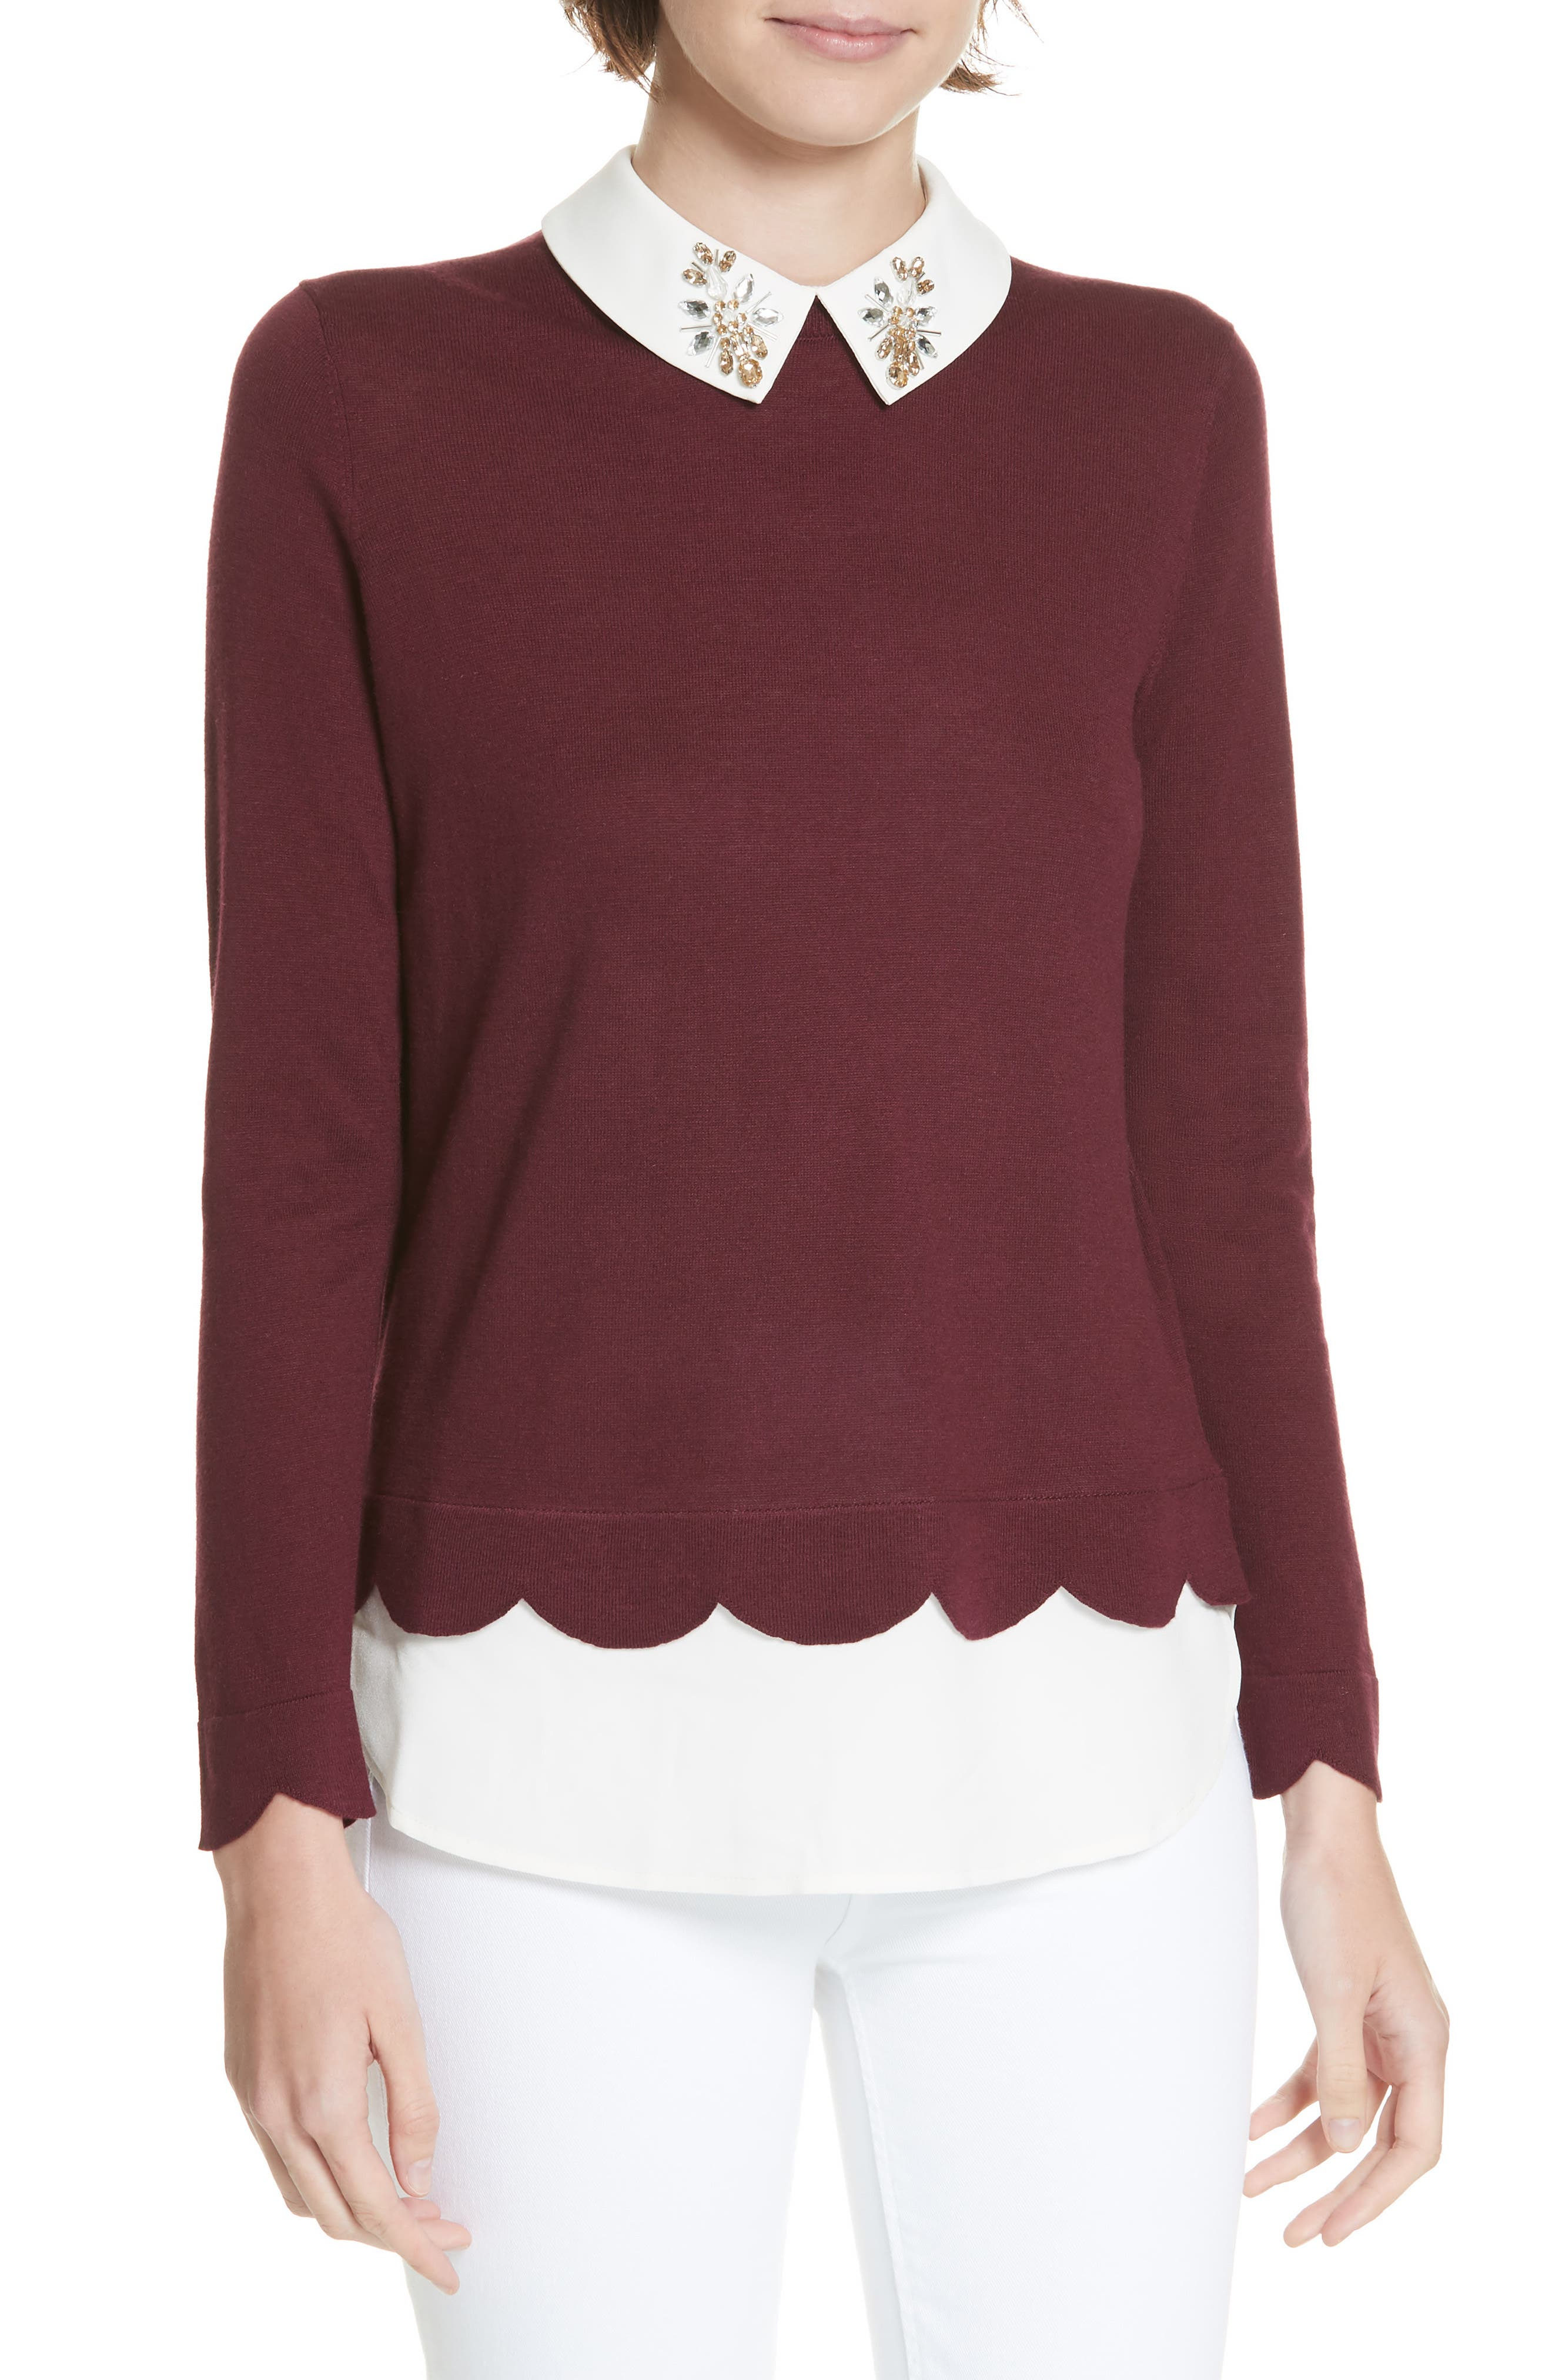 Suzaine Layered Sweater,                         Main,                         color, MAROON